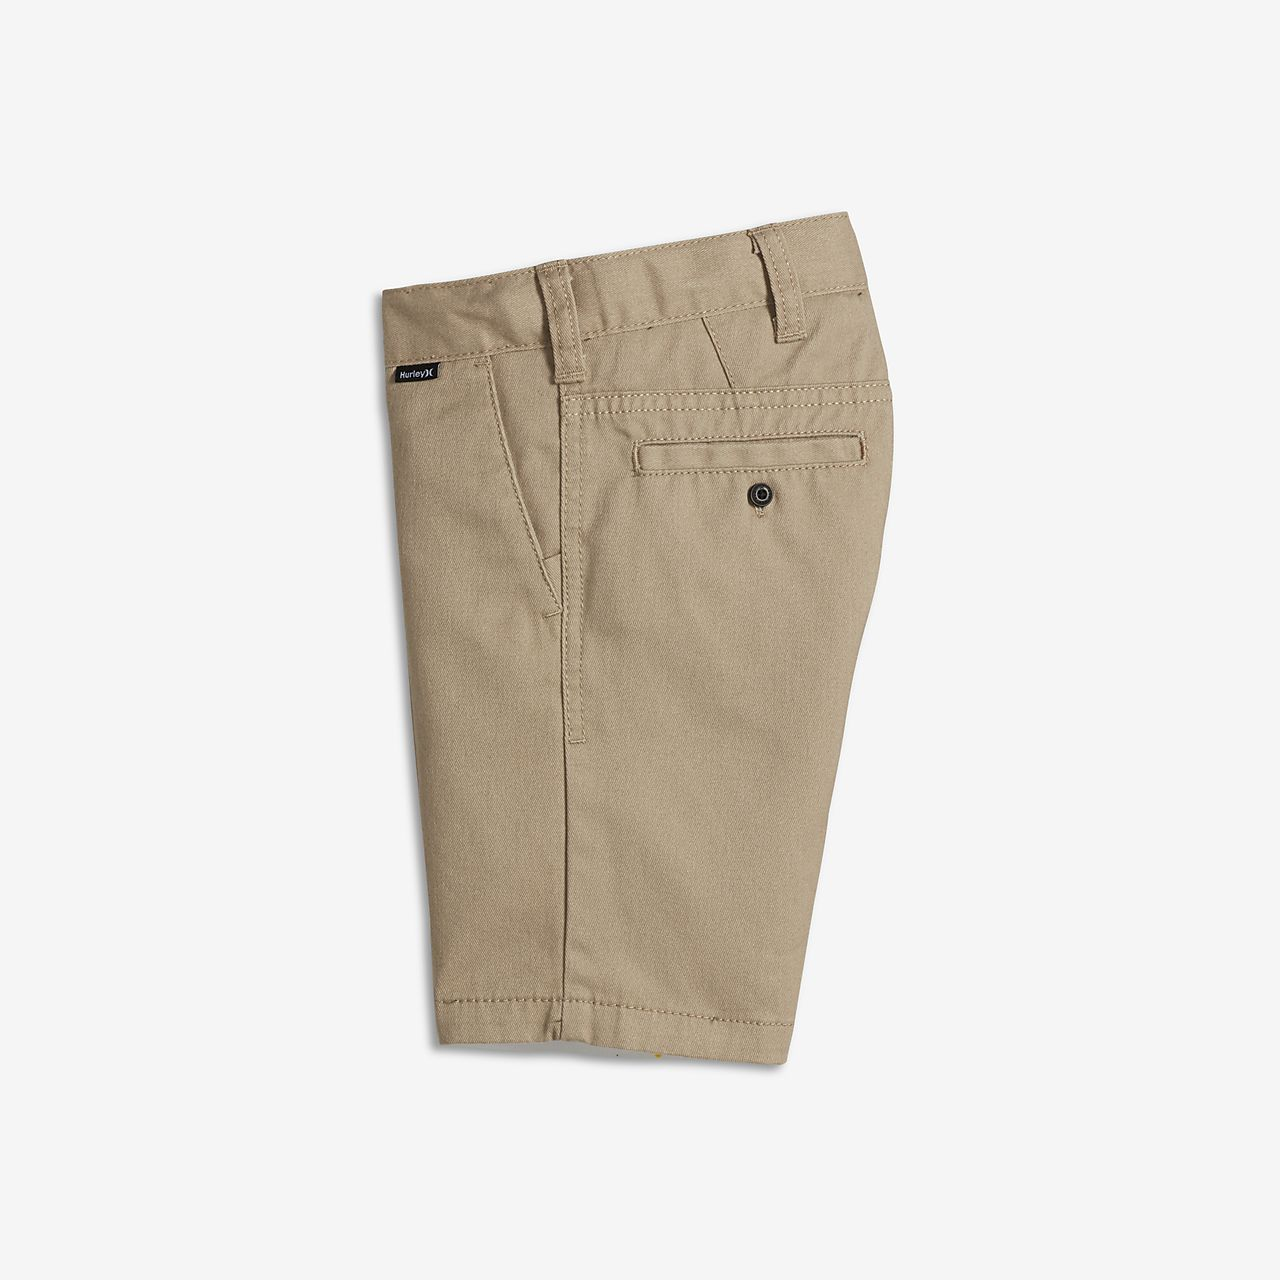 Hurley One And Only Toddler Boys' Walkshorts